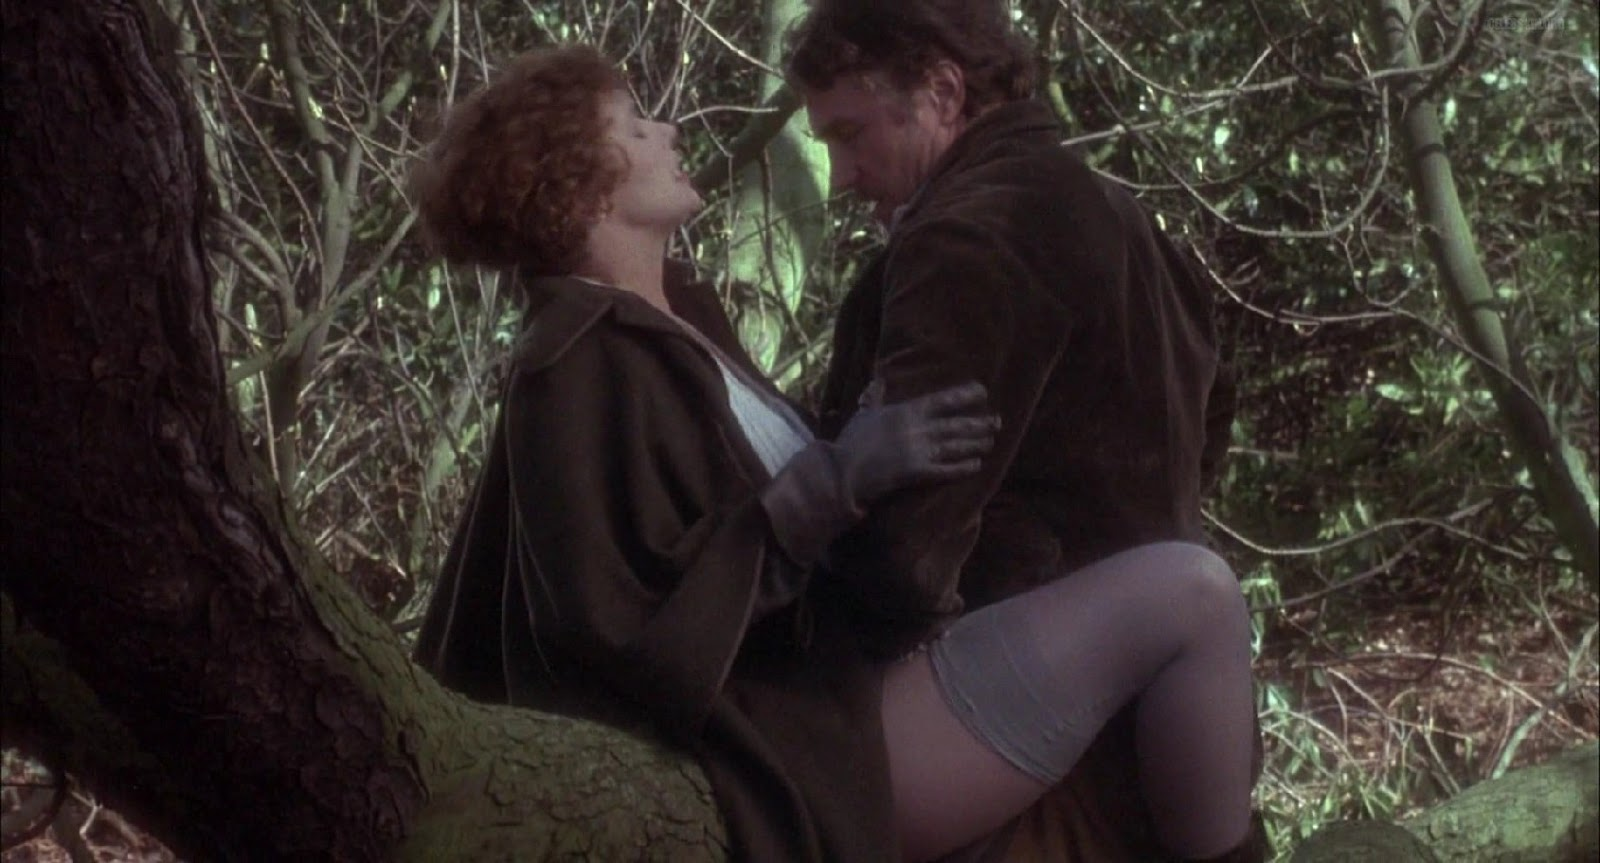 Pdf A Linguistic Approach To The Erotism Of Lady Chatterly's Lover